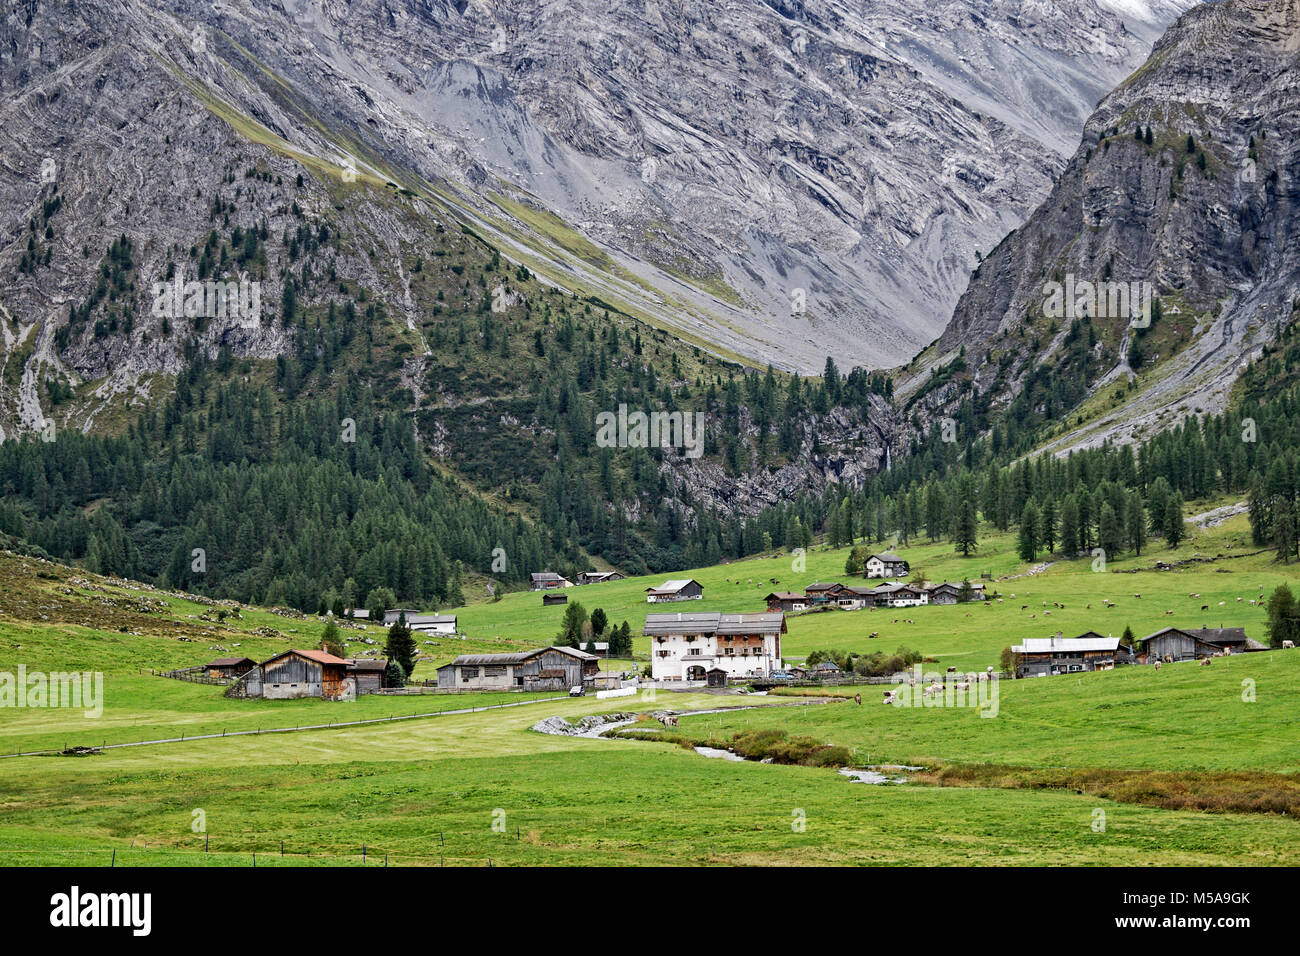 Remote Alpine Community Sited On Meadowland Below A Glacial Hanging Valley